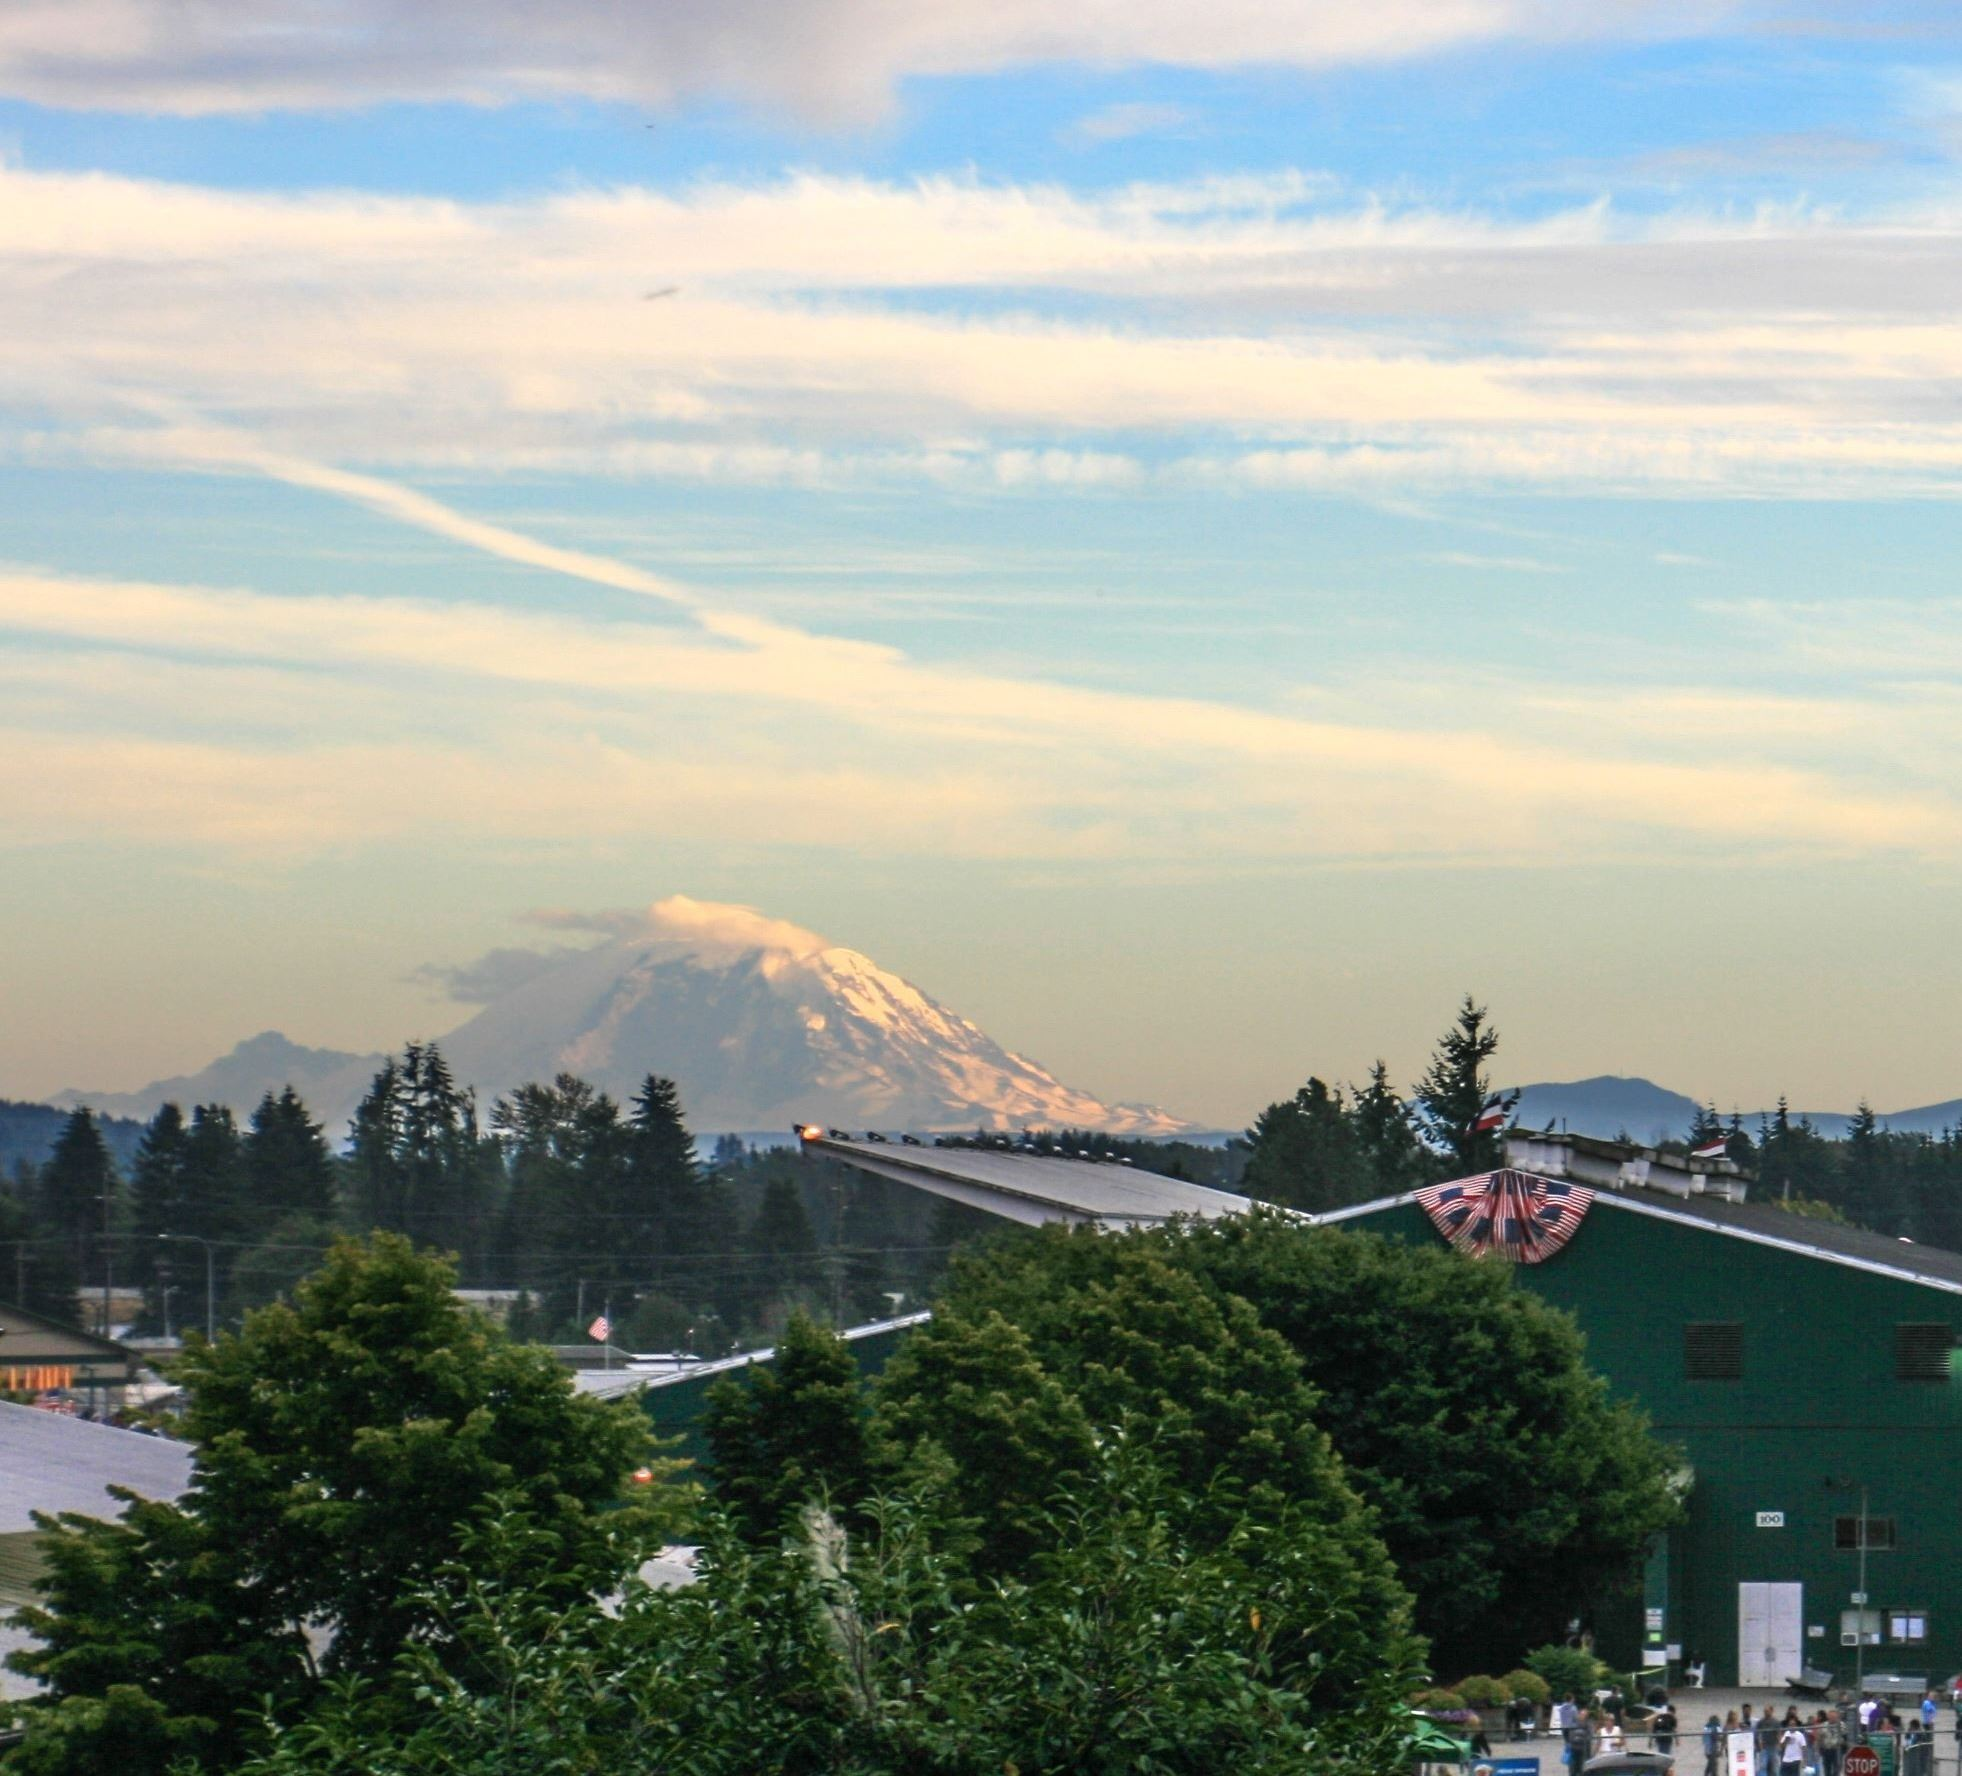 The Fair | Evergreen State Fairgrounds, WA - Official Website